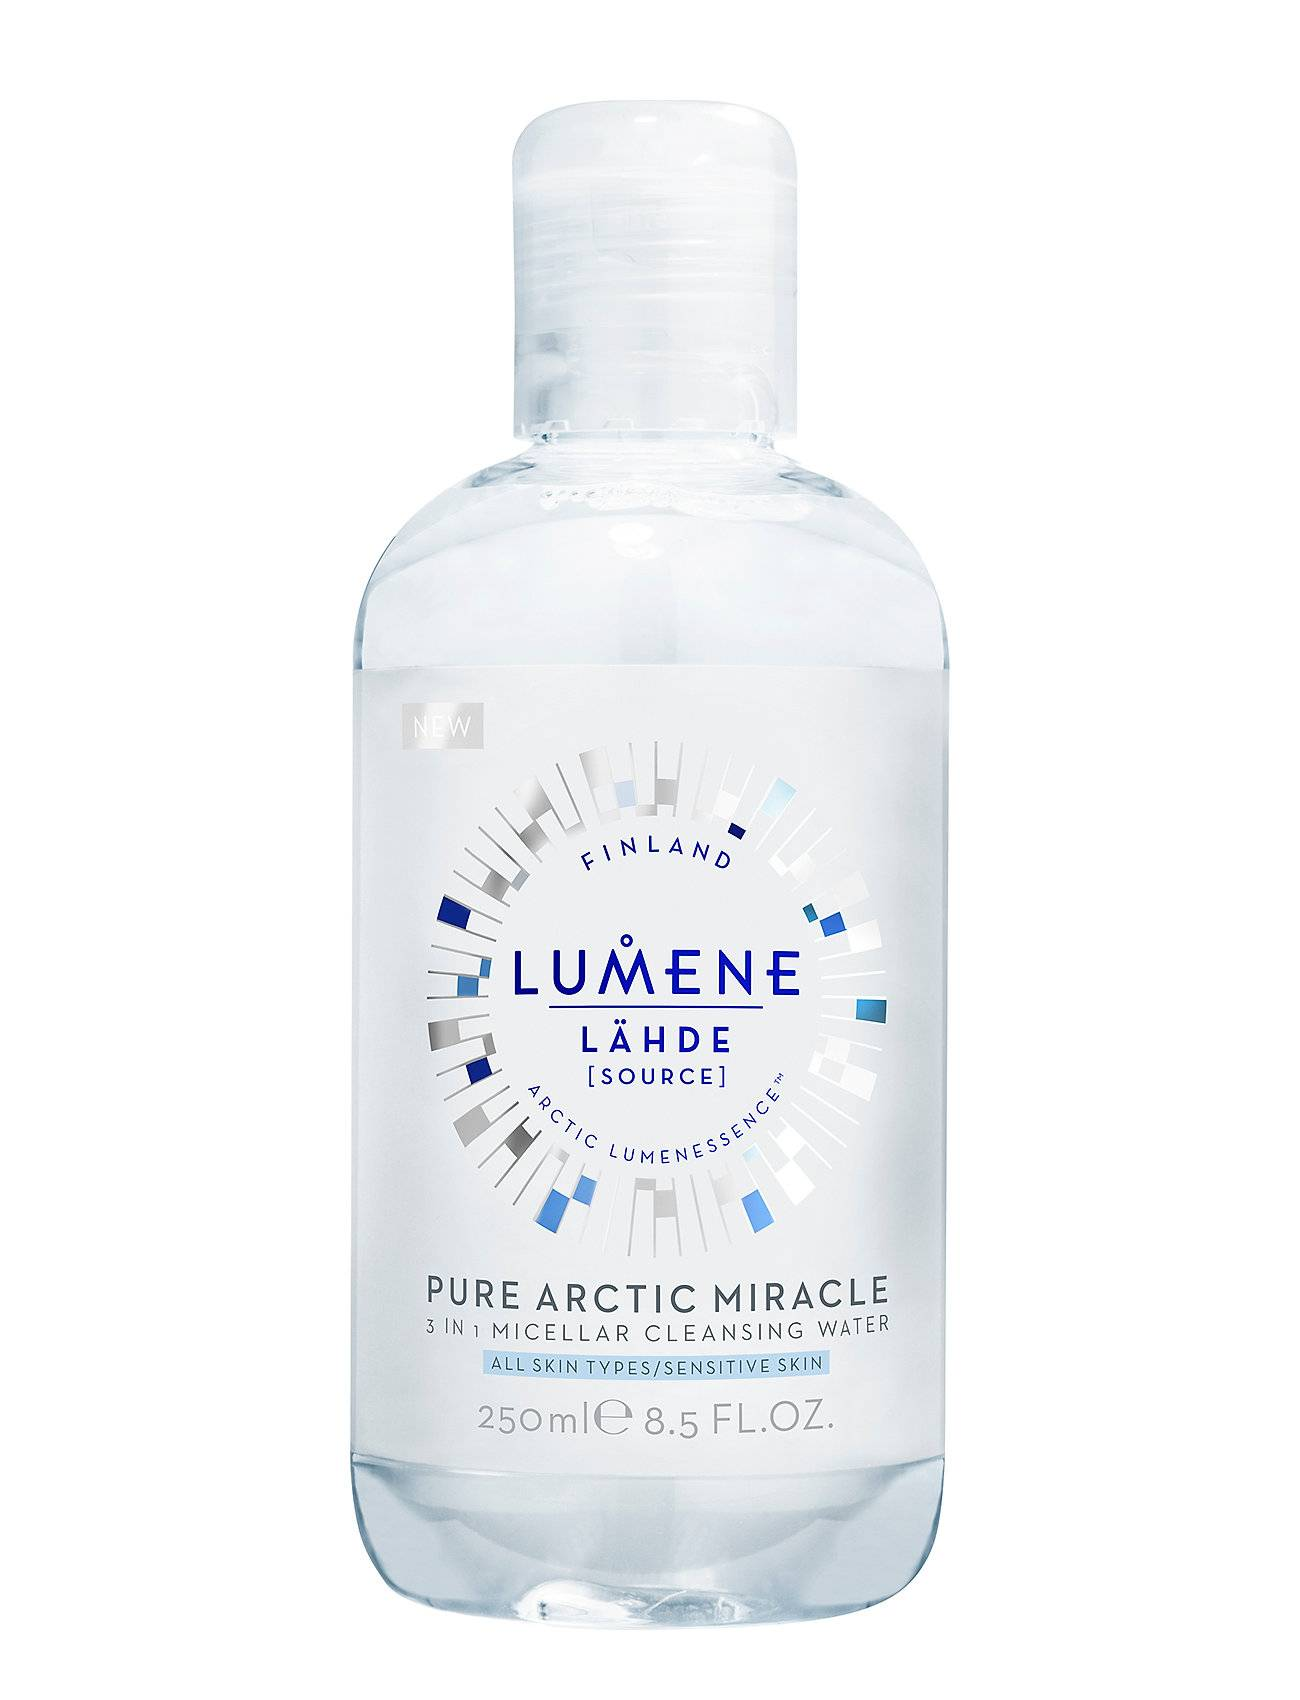 LUMENE LÄHde Nordic Hydra Pure Arctic Miracle 3in1 Micellar Cleans